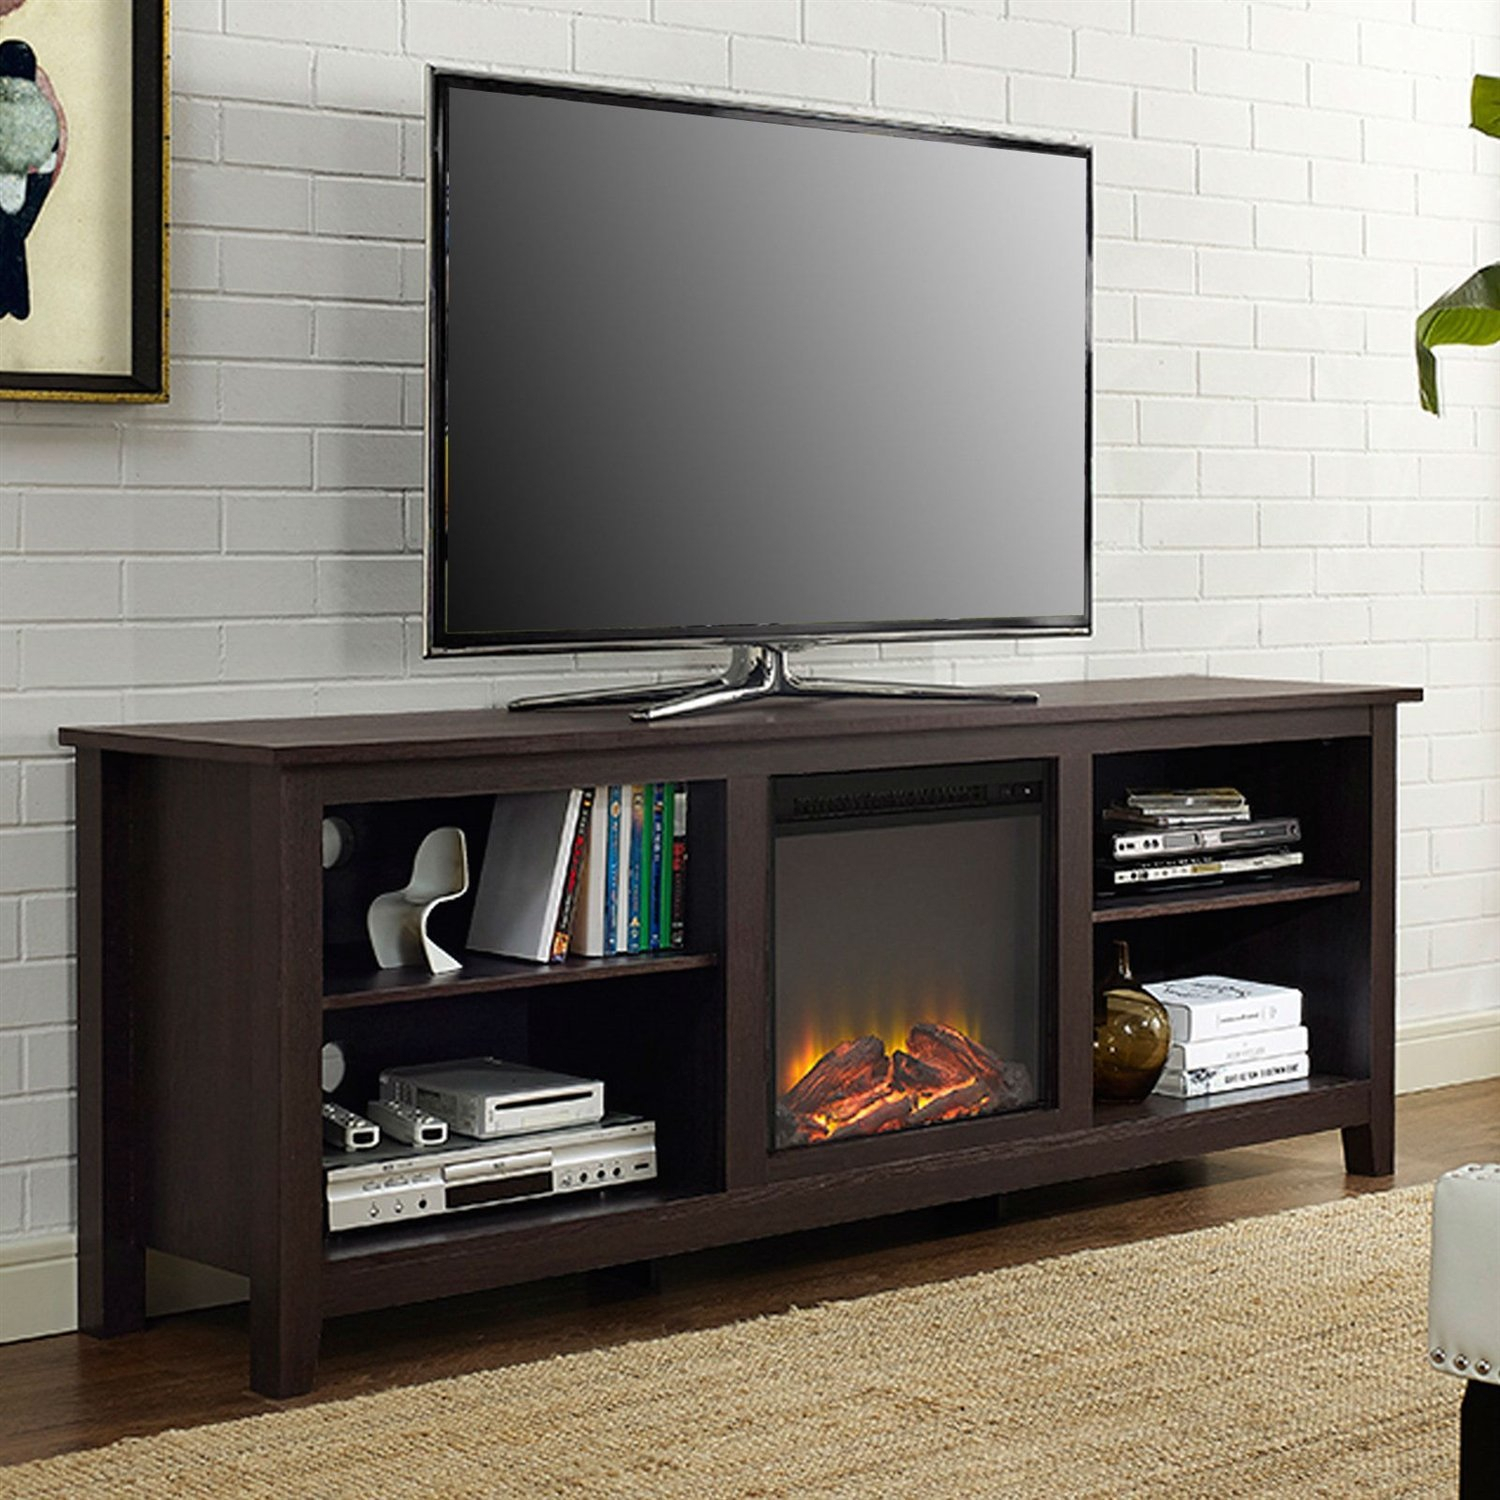 Espresso 70 Inch Electric Fireplace Tv Stand Space Heater | Products Within Annabelle Black 70 Inch Tv Stands (Photo 20 of 30)